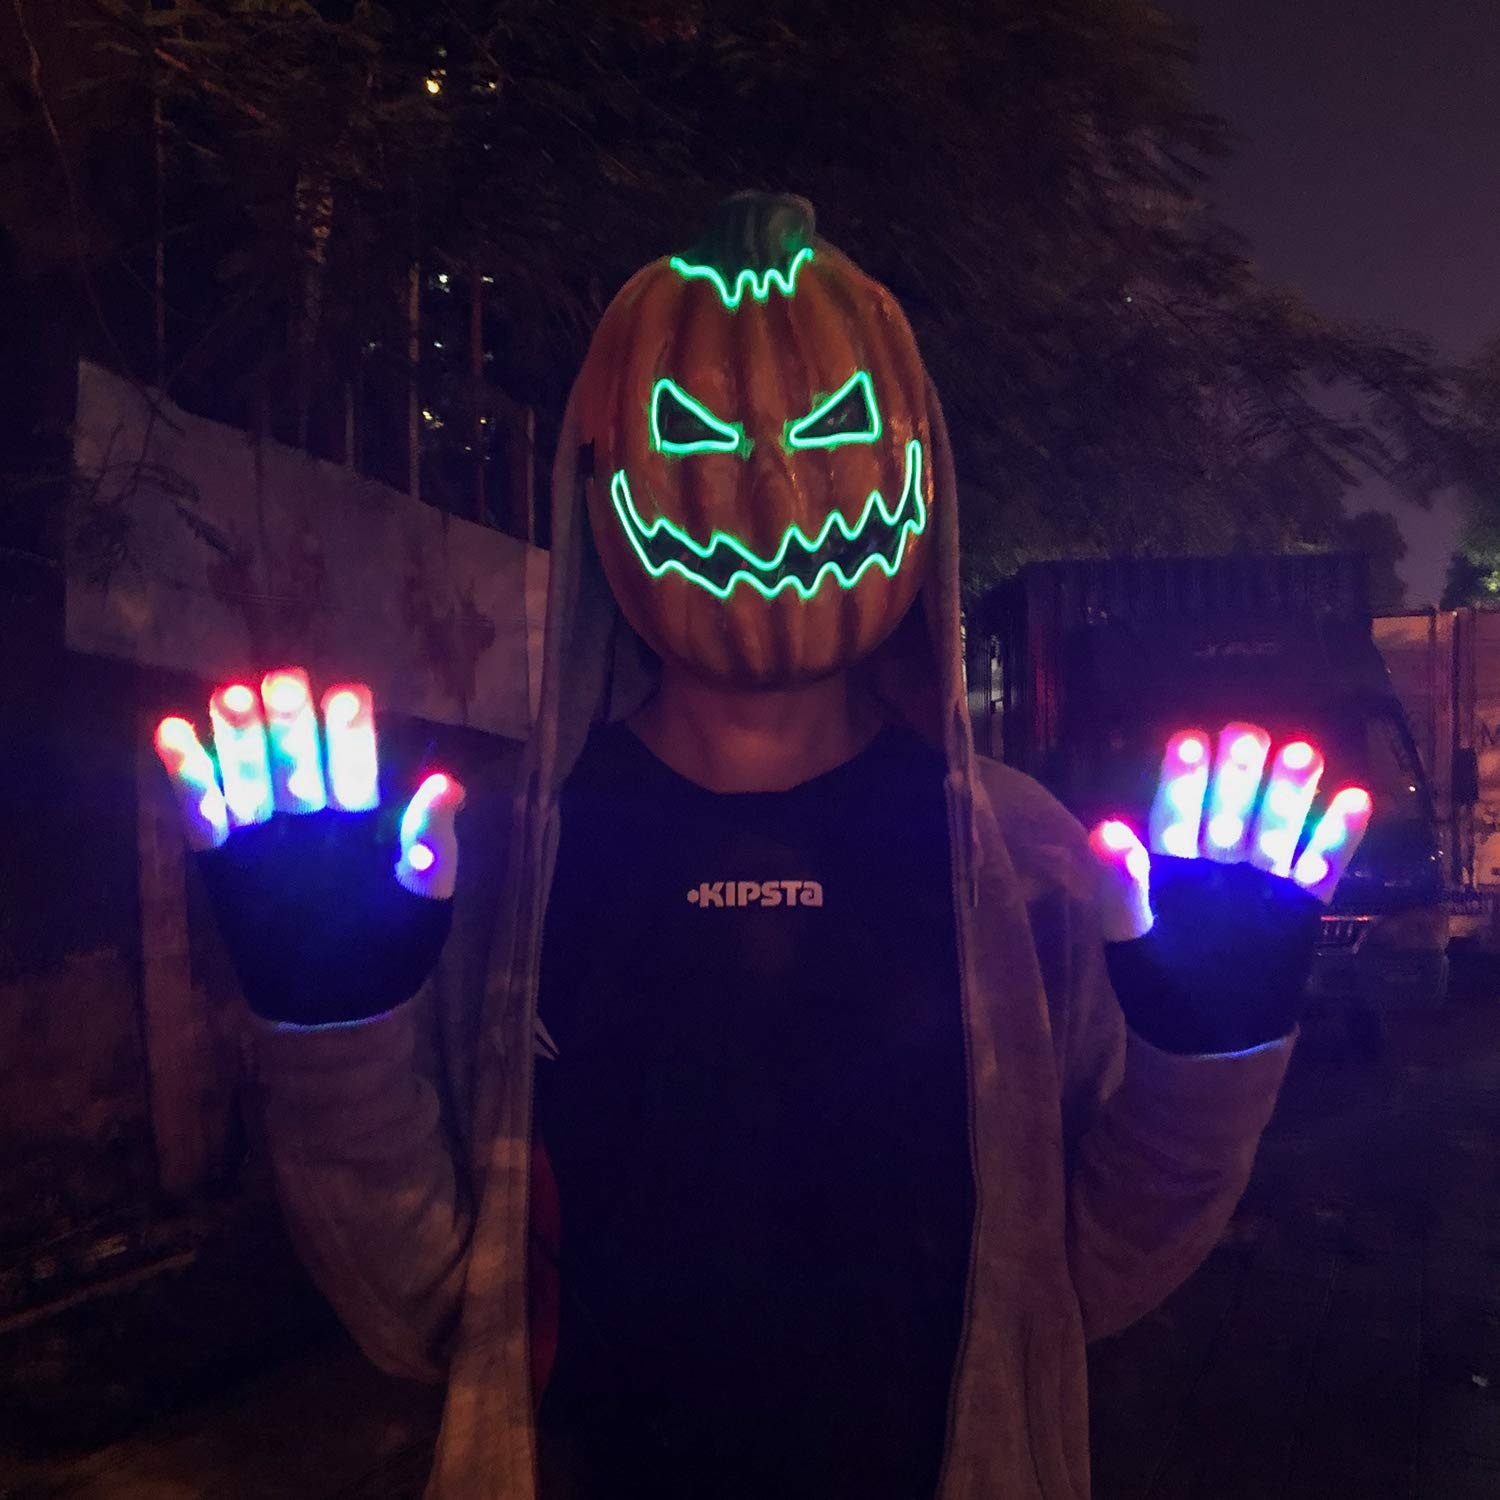 Charlemain Halloween LED Mask, Light up Mask, Flashing Purge Mask, Glowing Light For Scary Party Decoration Party Masks for Festivals/ Halloween/ Bonfire Night/ Party/ Games/ Gift, Yellow Pumpkin